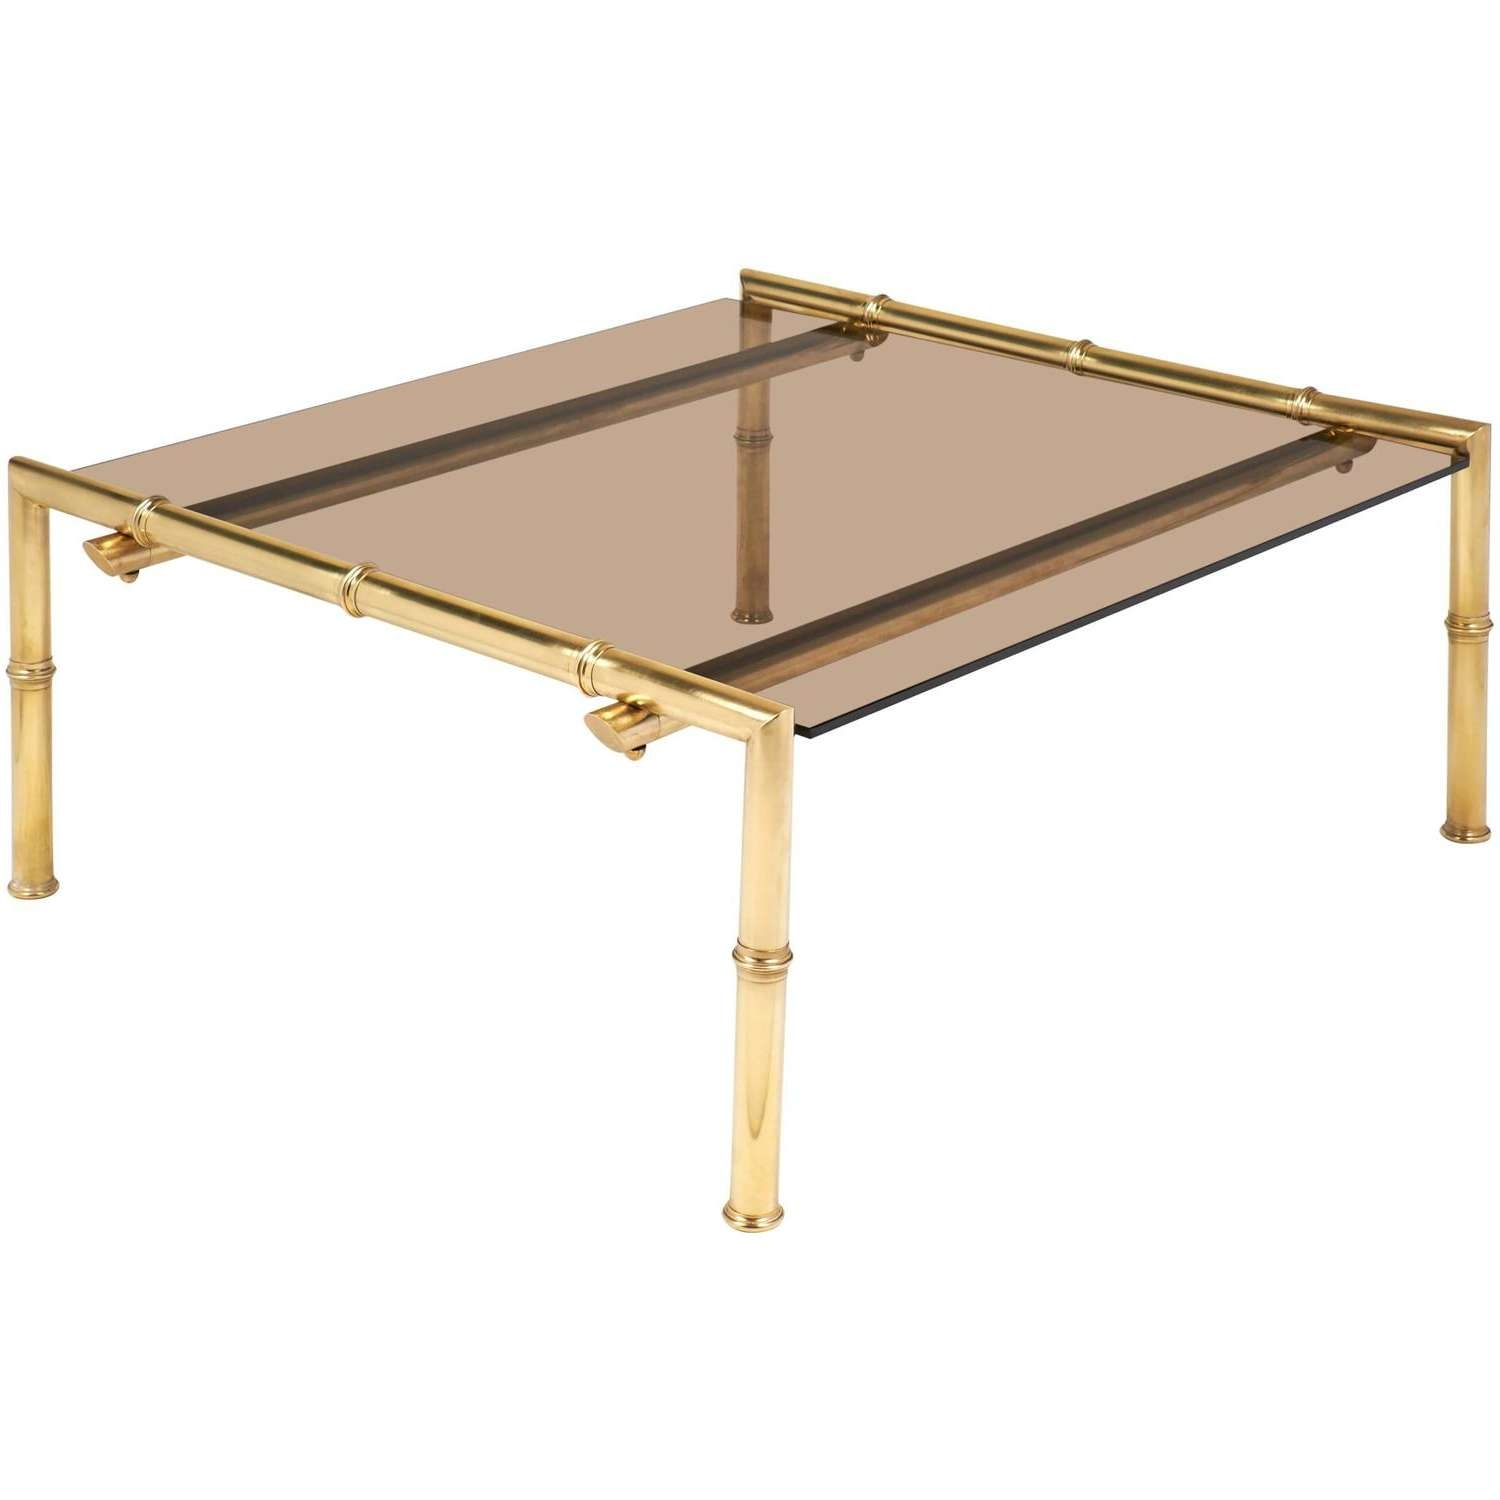 Coffee Tables : Marble Coffee Table Brass Legs Base Antique And For Best And Newest Retro Smoked Glass Coffee Tables (View 8 of 20)